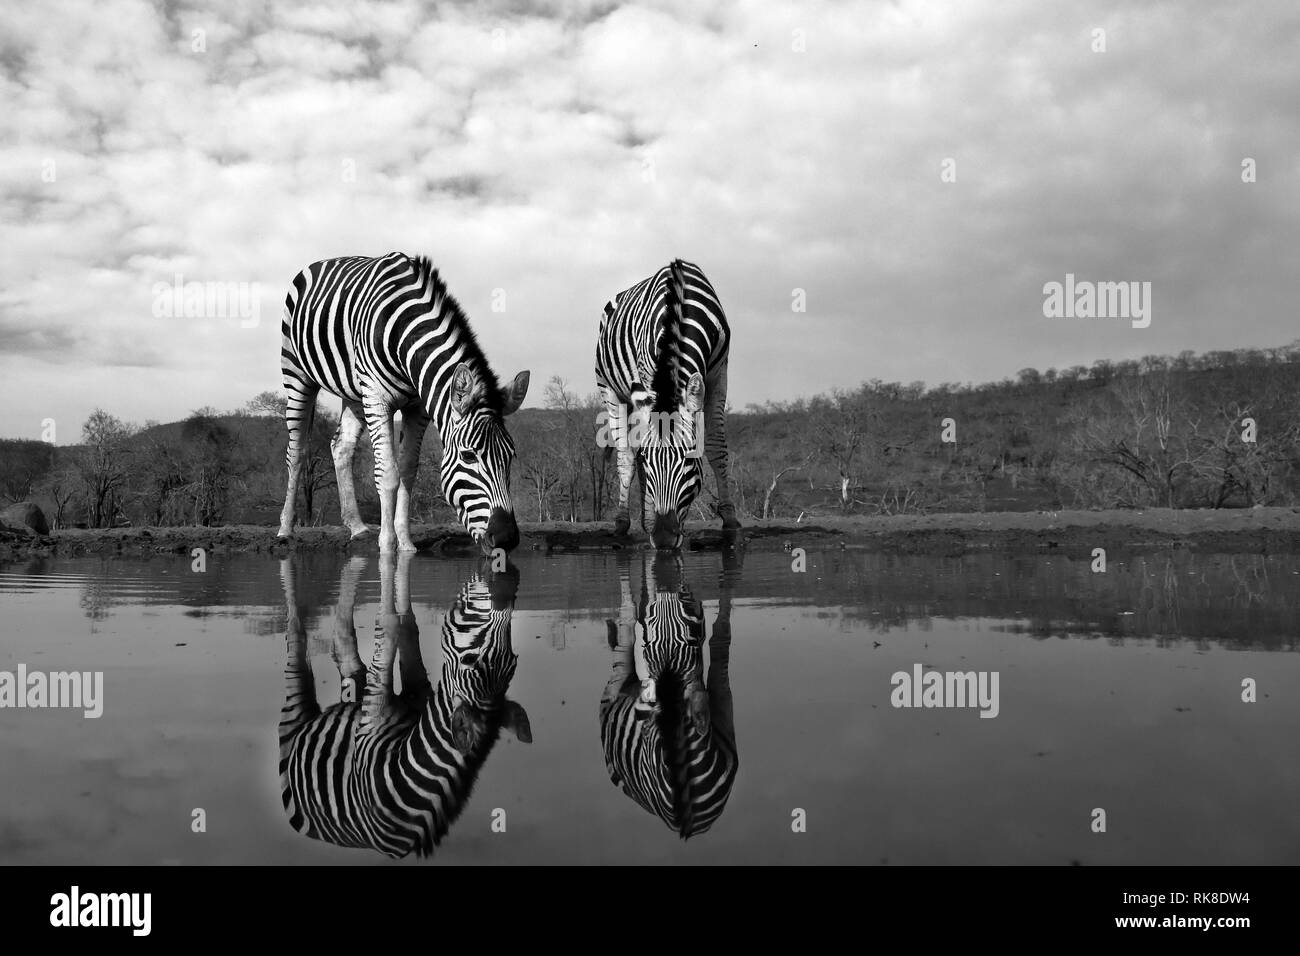 Two zebras water in a pool of water in the savannah, the photo was drawn in black and white Stock Photo